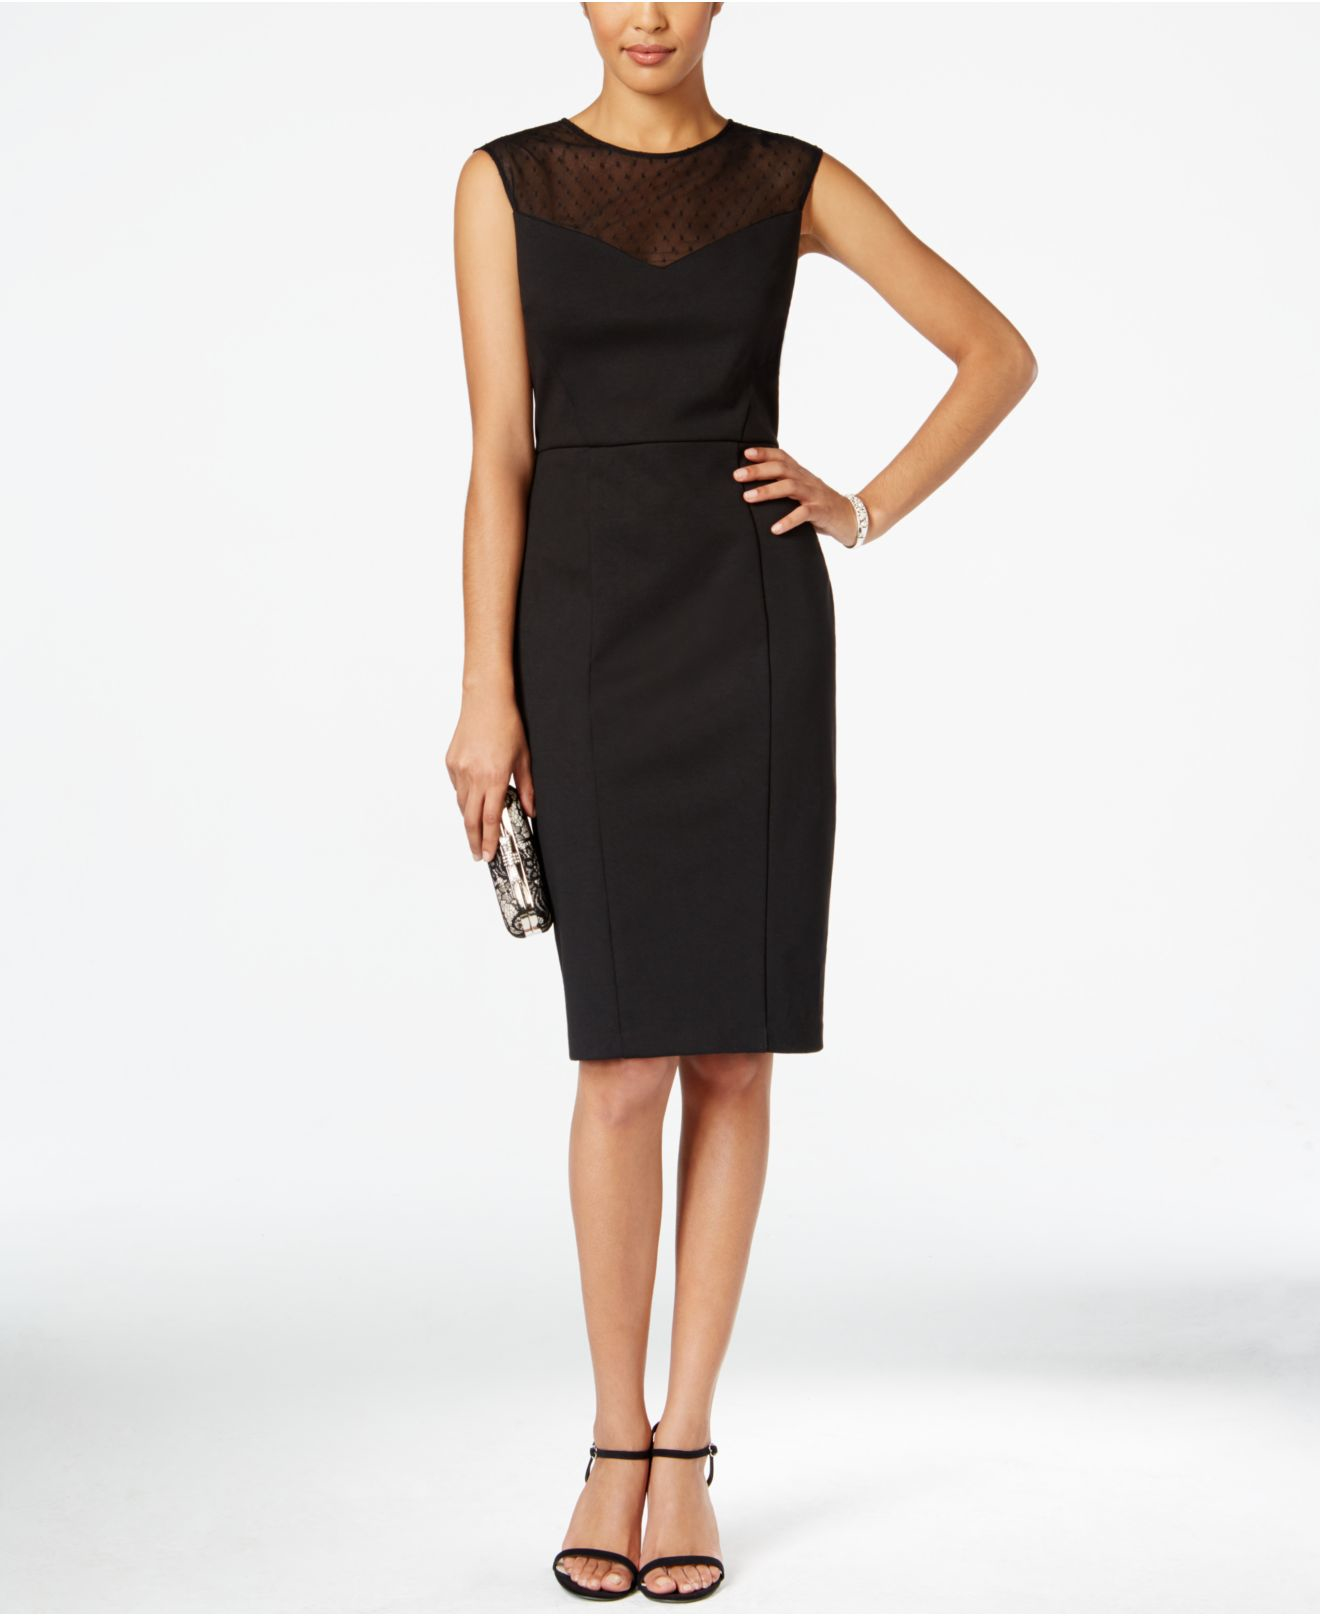 Lyst - Nine West Illusion Sheath Dress in Black a821721e2